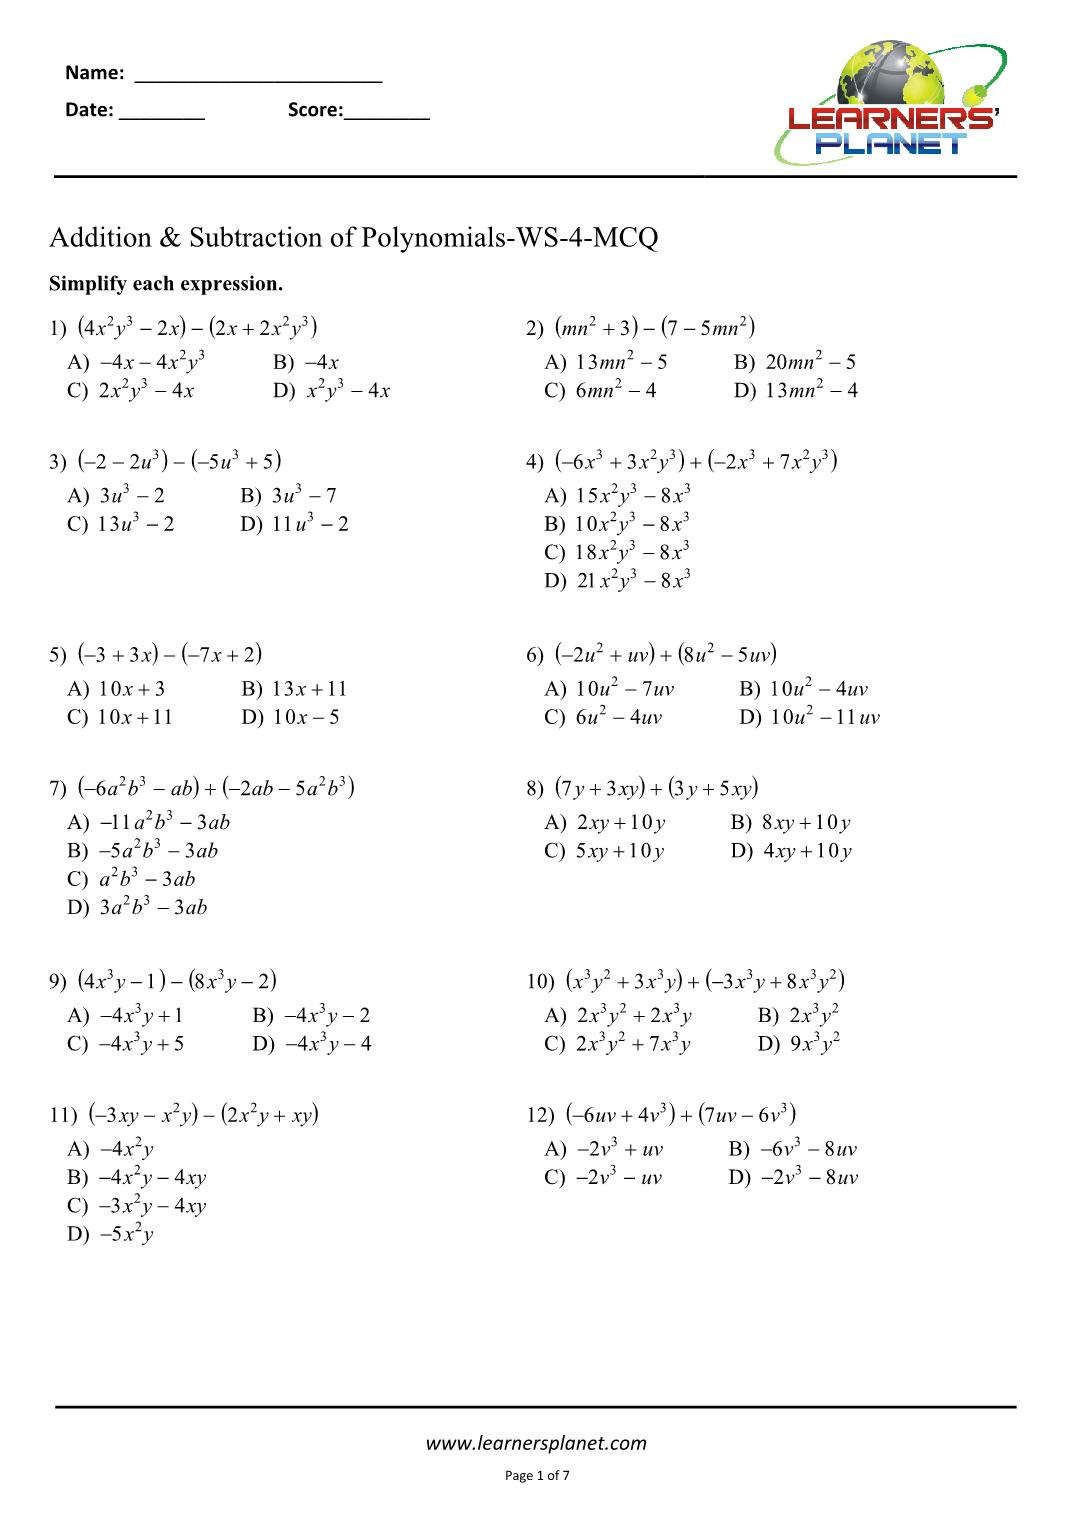 Adding And Subtracting Polynomials Worksheets 8Th Cbse